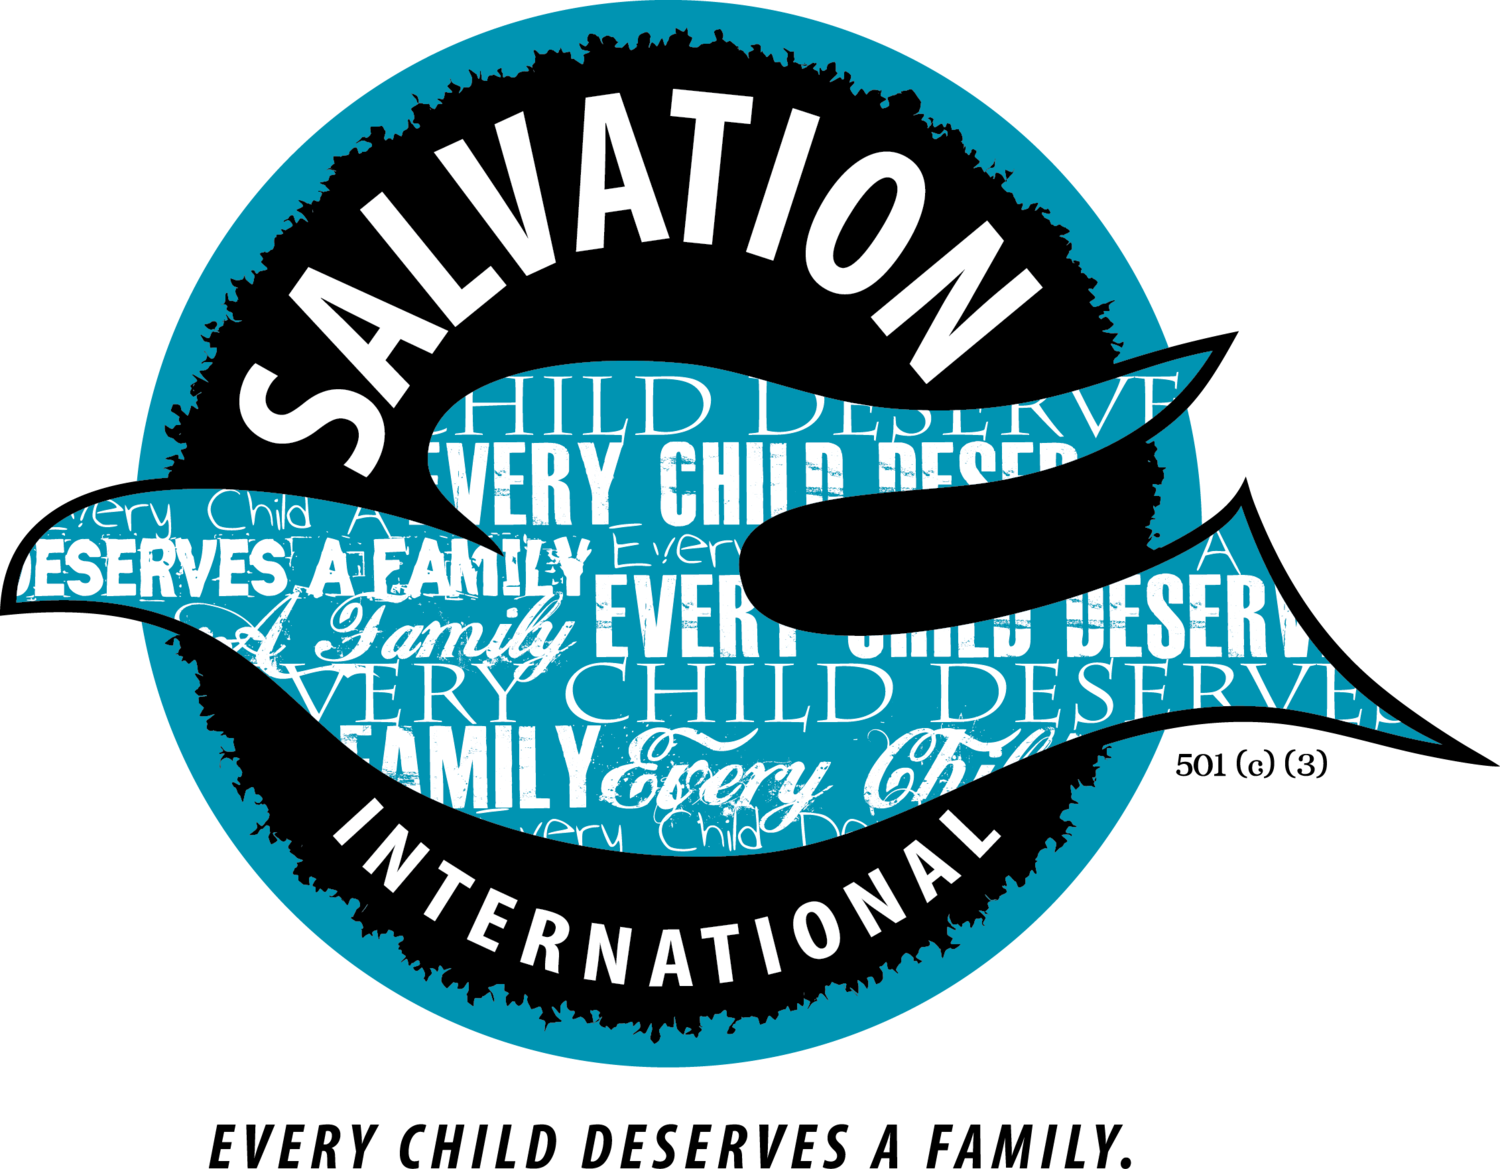 SALVATION INTERNATIONAL 2017